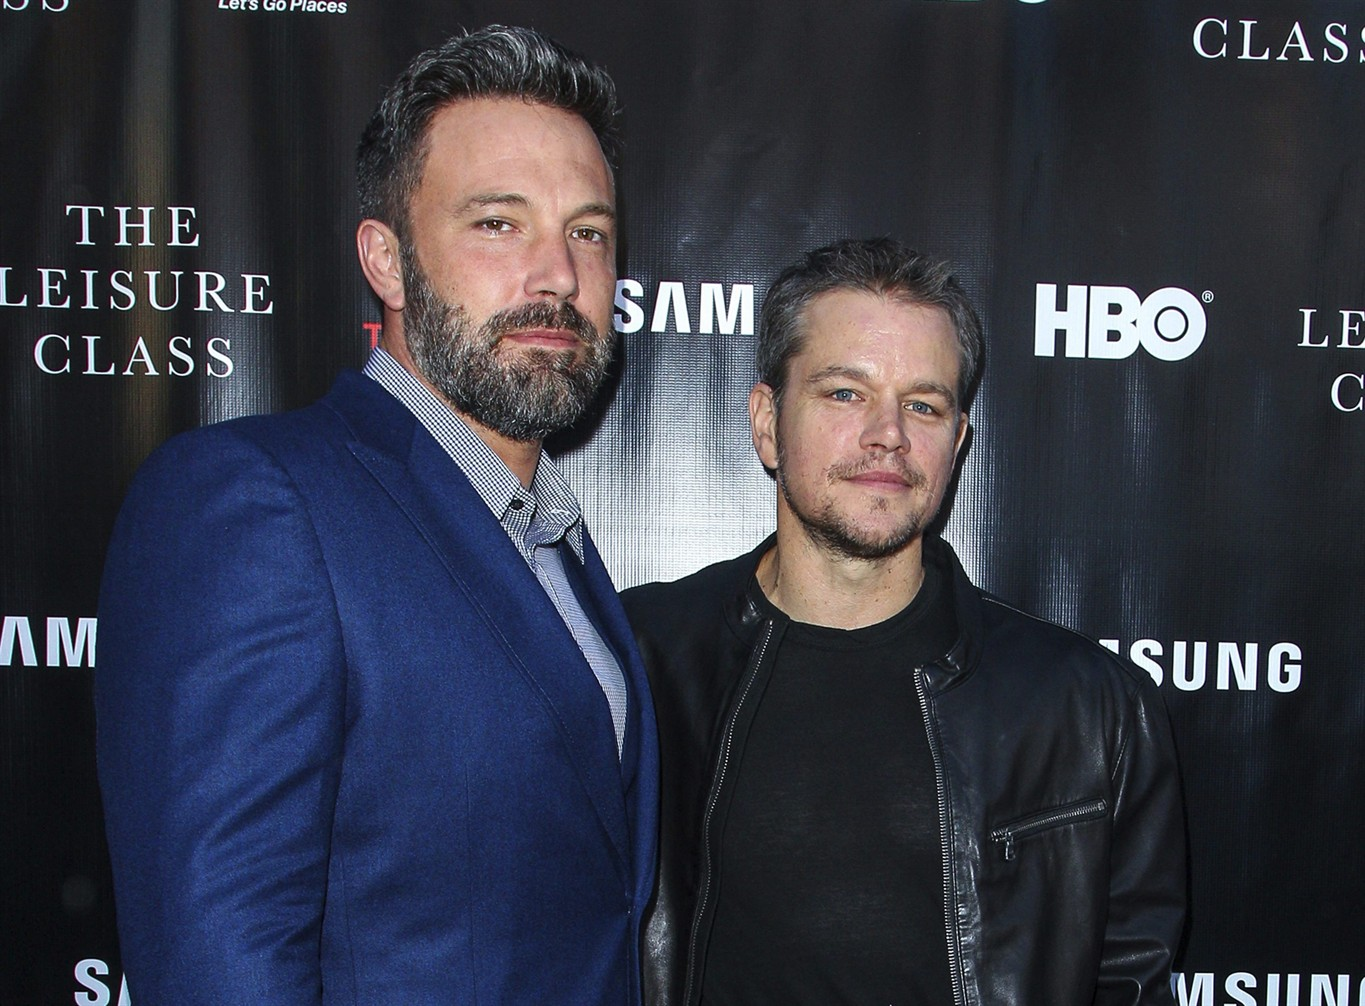 Ben Affleck film moves production to Vancouver amid COVID-19 concerns